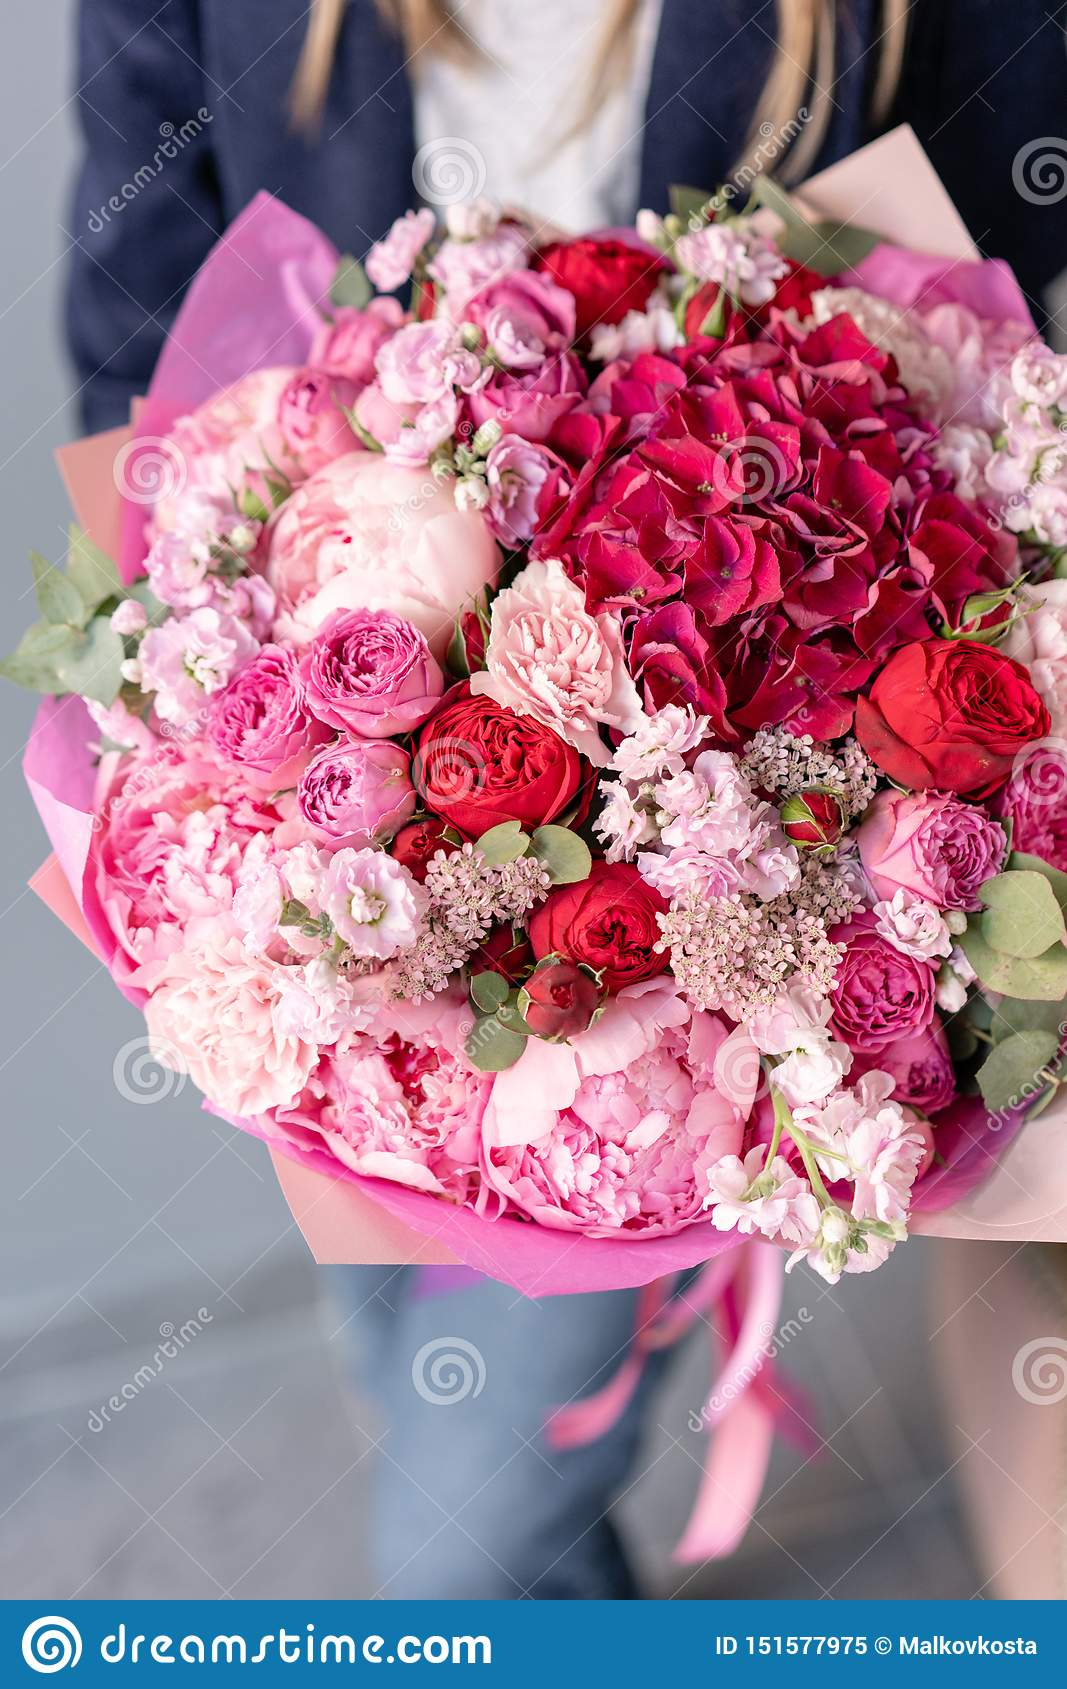 Pink Peonies And Red Hydrangea Beautiful Bouquet Of Mixed Flowers In Woman Hand Floral Shop Concept Handsome Fresh Stock Image Image Of Bloom Profession 151577975